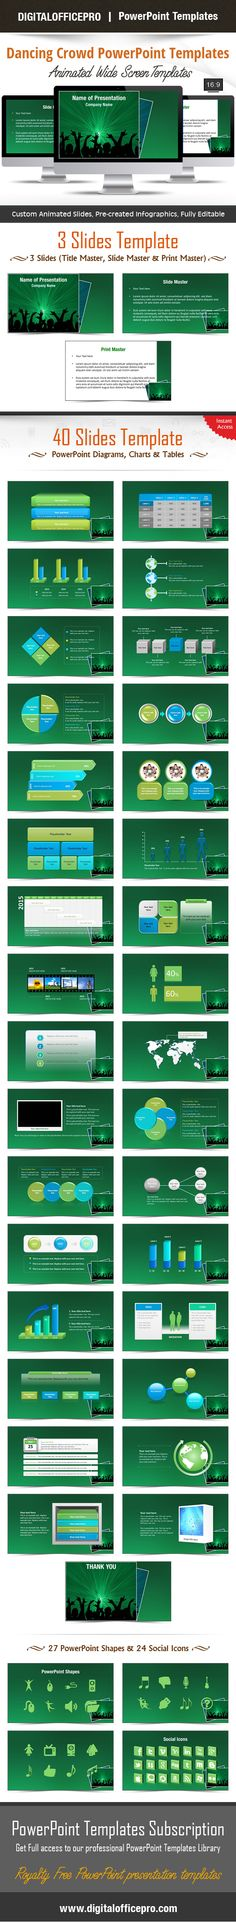 Impress and Engage your audience with Architectural Supervision - new jungle powerpoint template